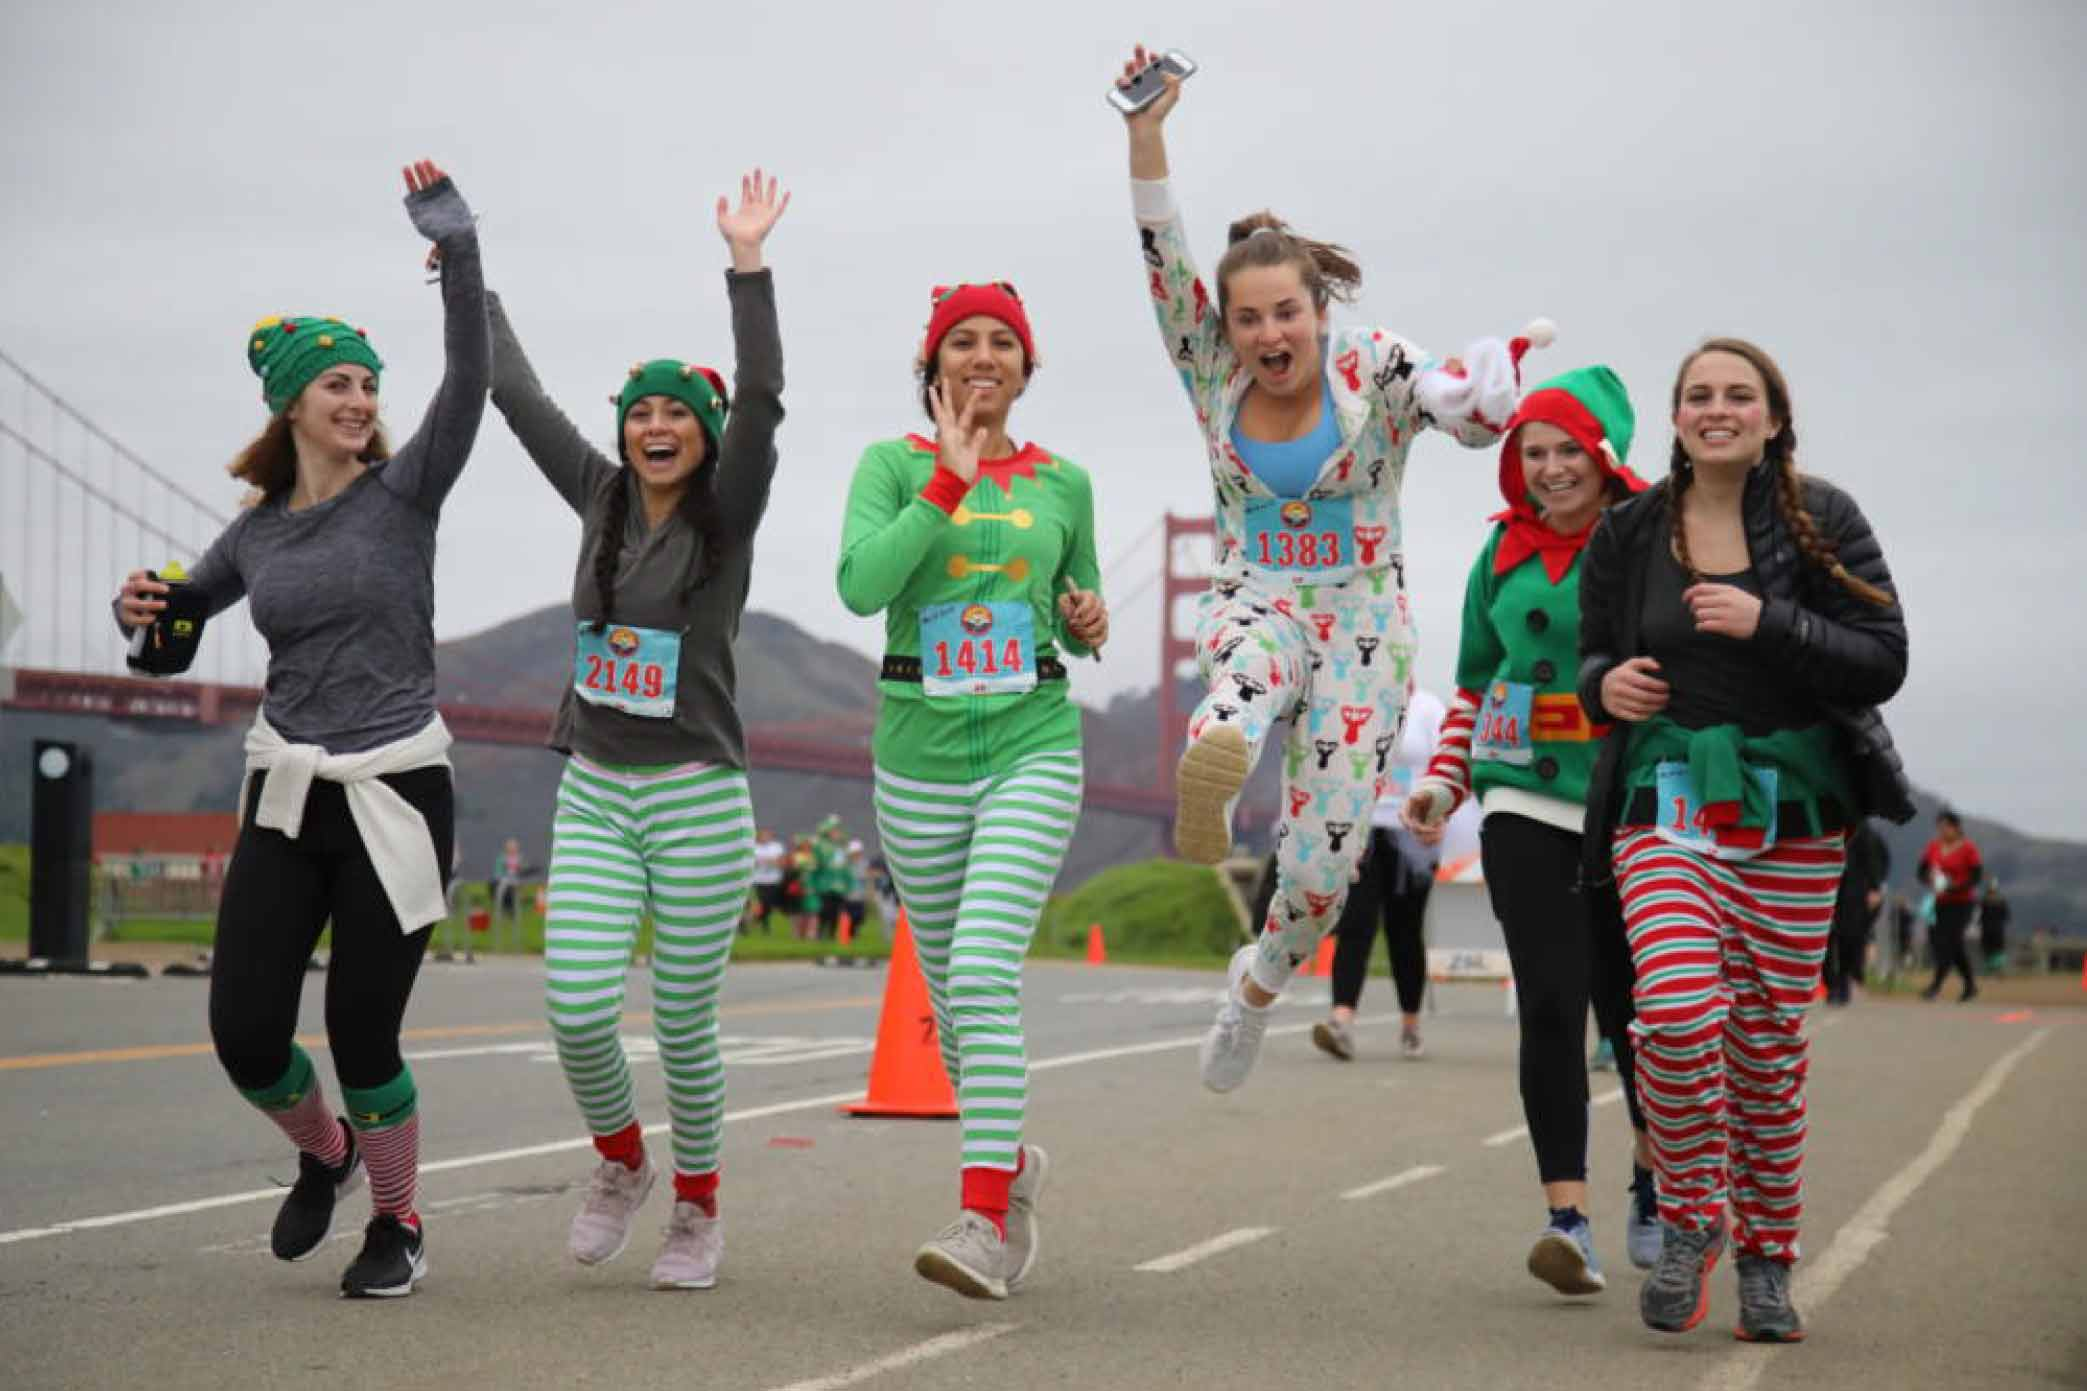 Elf On The Run 5K - December 15th, 2019San Francisco, CA - Crissy Field